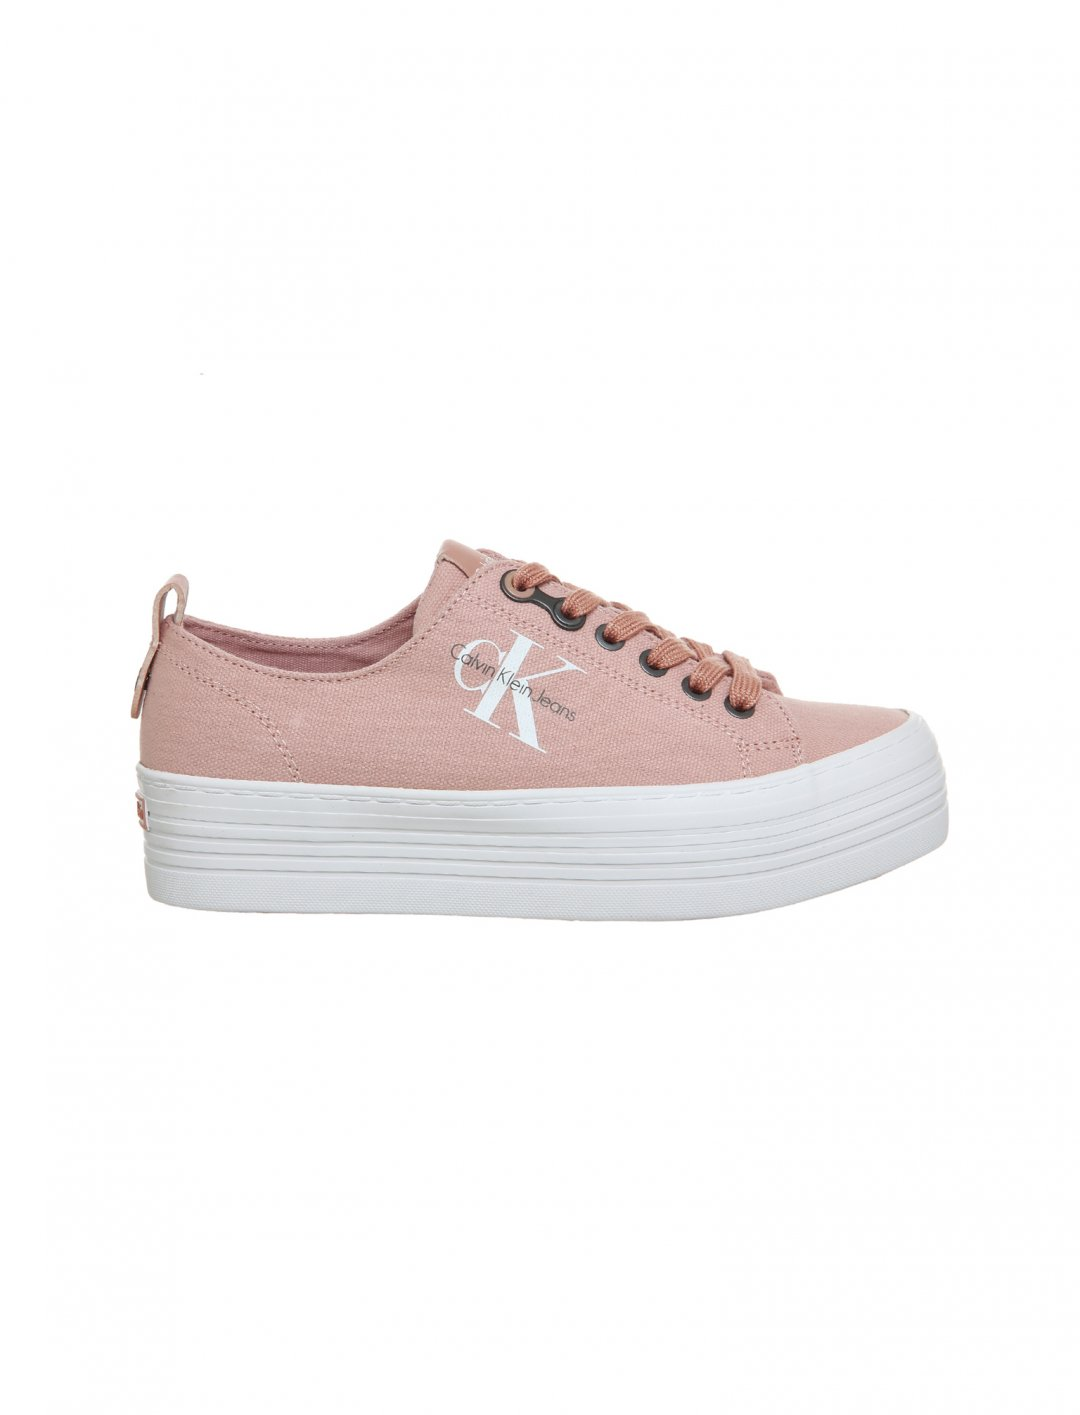 "Zolah Flatform Trainers {""id"":12,""product_section_id"":1,""name"":""Shoes"",""order"":12} Calvin Klein"